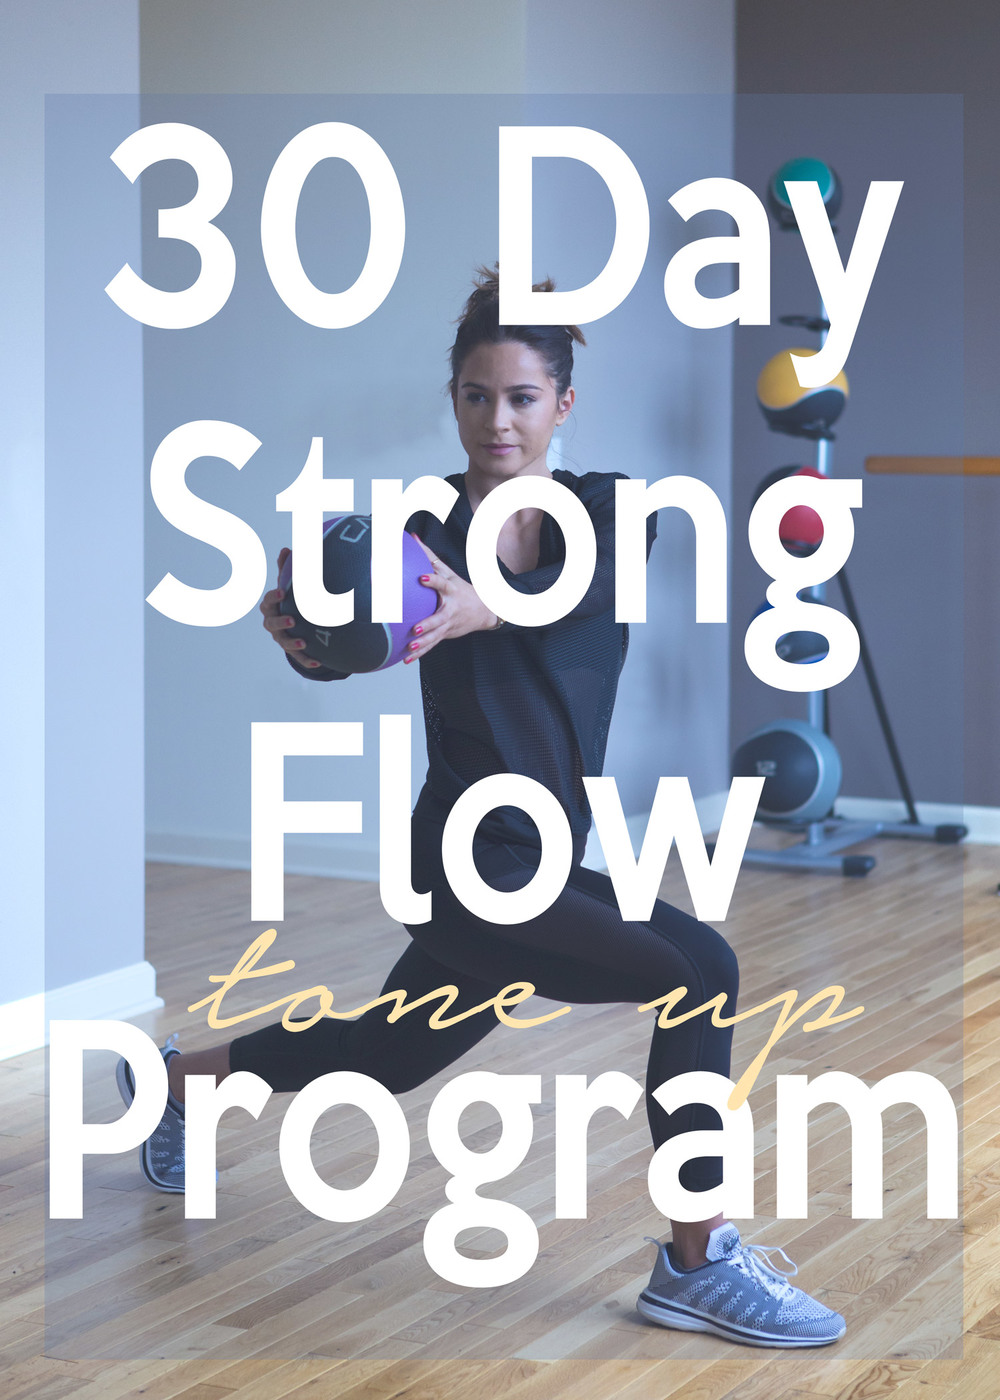 Pin now, and join in on the 30 day strong flow tone up yoga and hiit program  Wearing:  Michi pants ,  Lanston top  c/o Carbon 38,  APL sneakers   Photos by  J. Grundman Photography